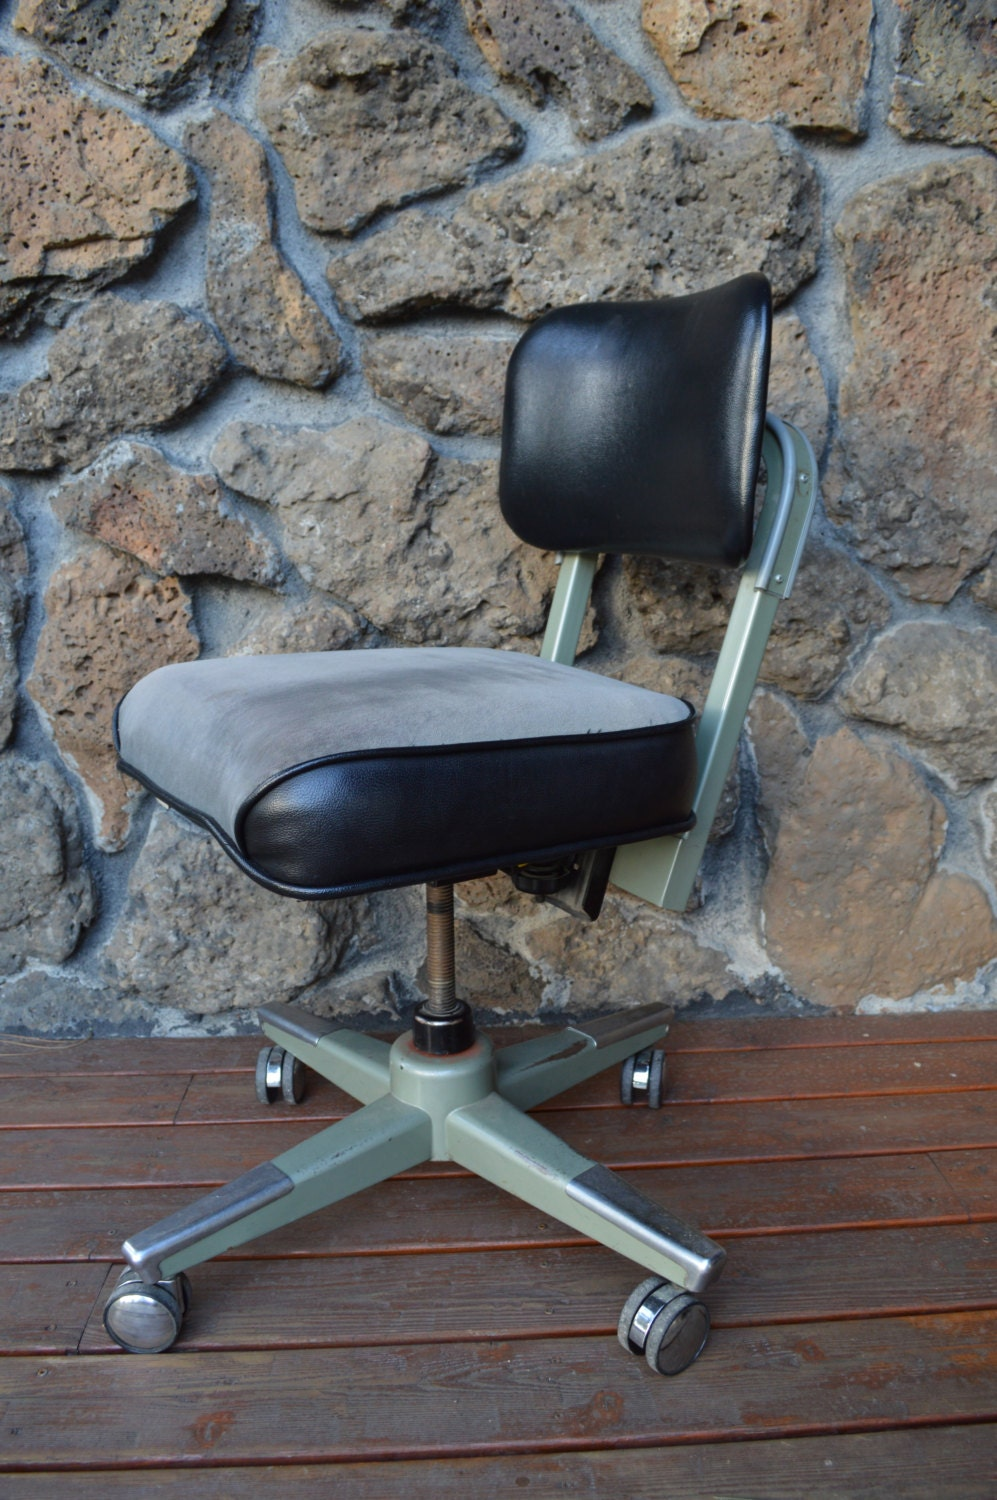 Popular items for retro chairs on Etsy